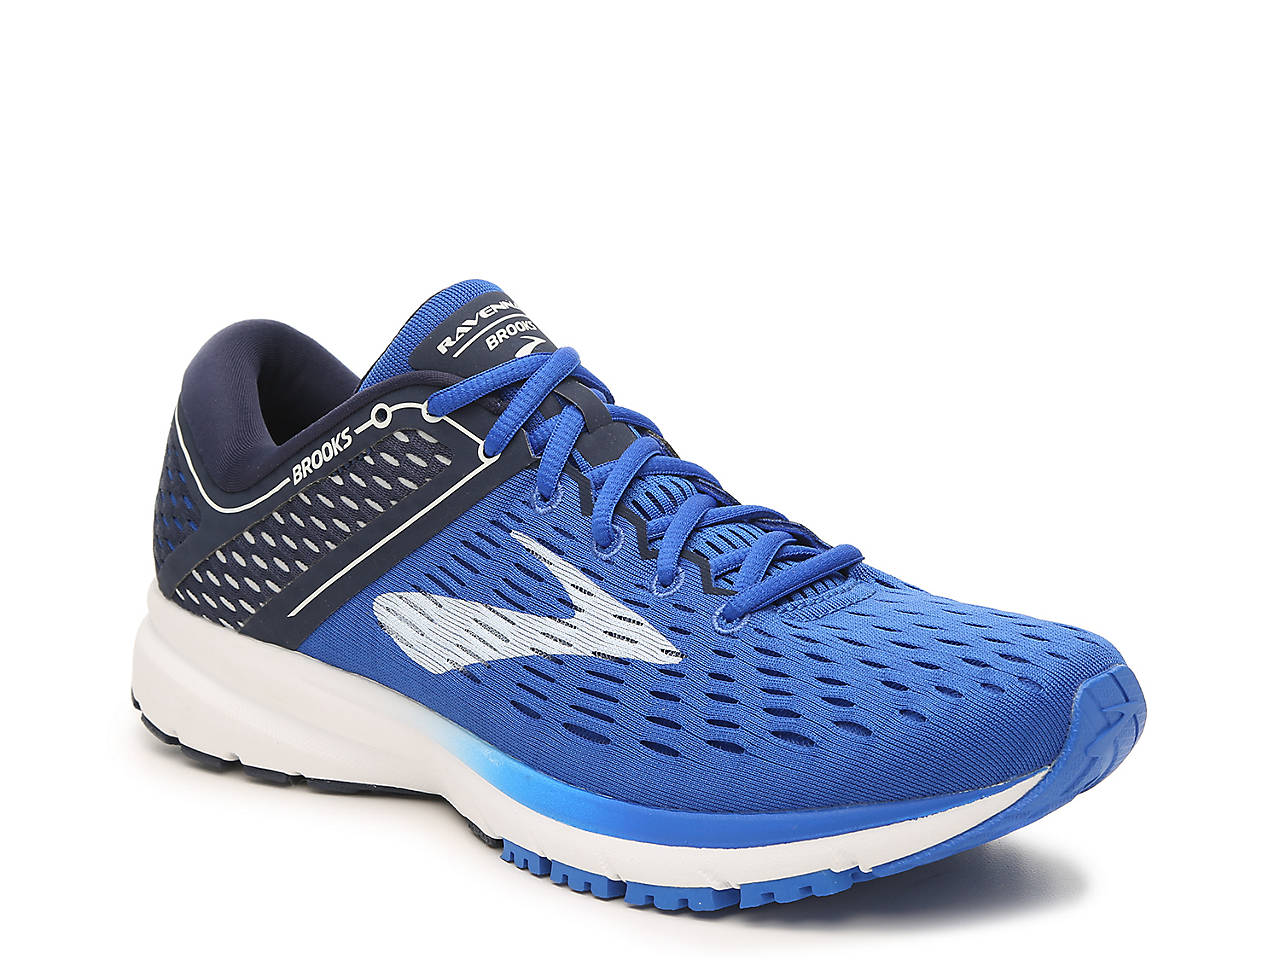 a8f5f62d3c8 Brooks Ravenna 9 Lightweight Performance Running Shoe - Men s Men s ...